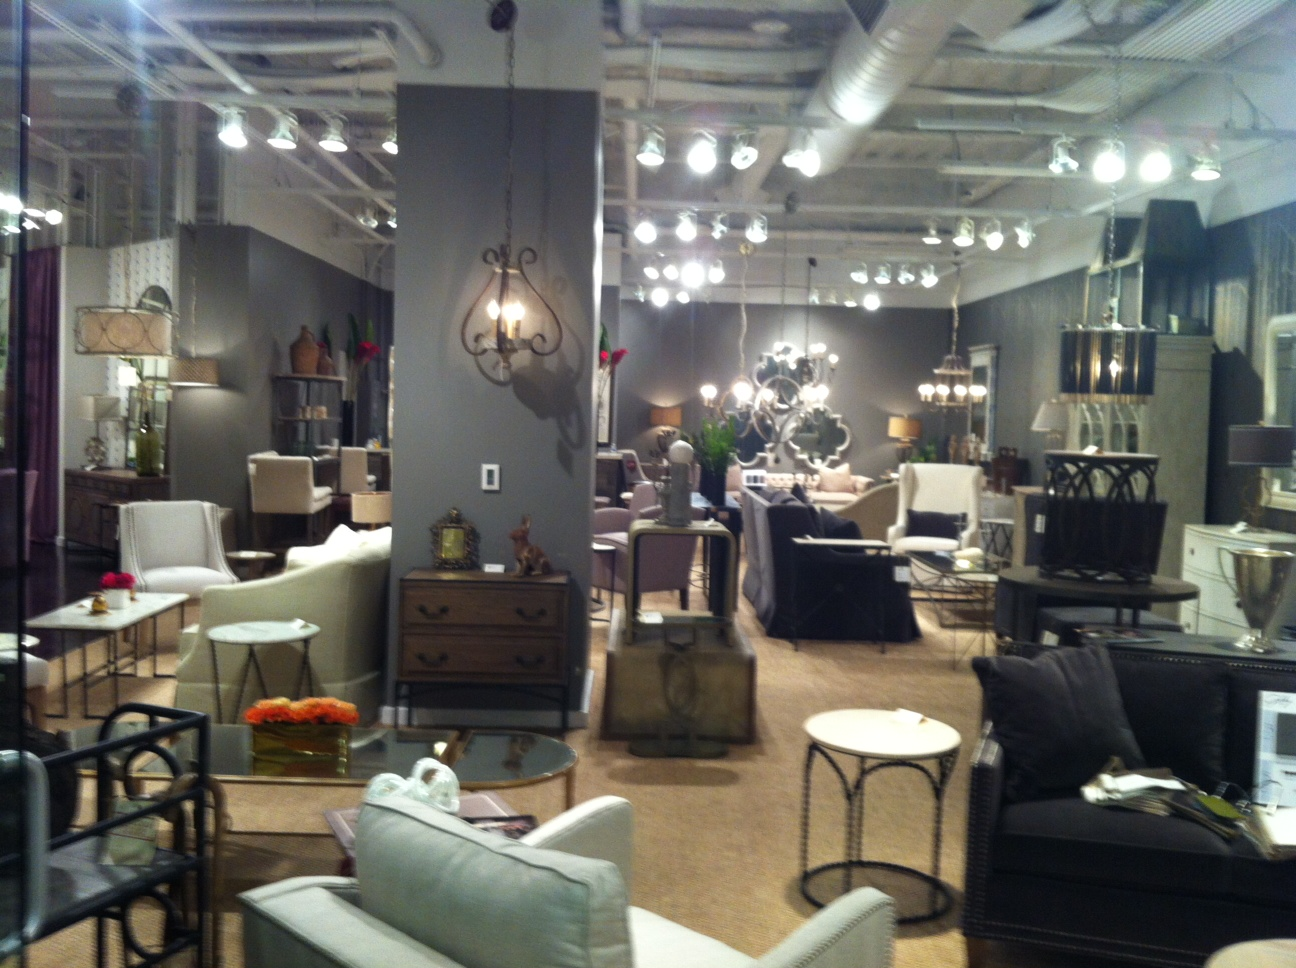 Gabby Expands Permanent Showrooms In Las Vegas And High Point Markets